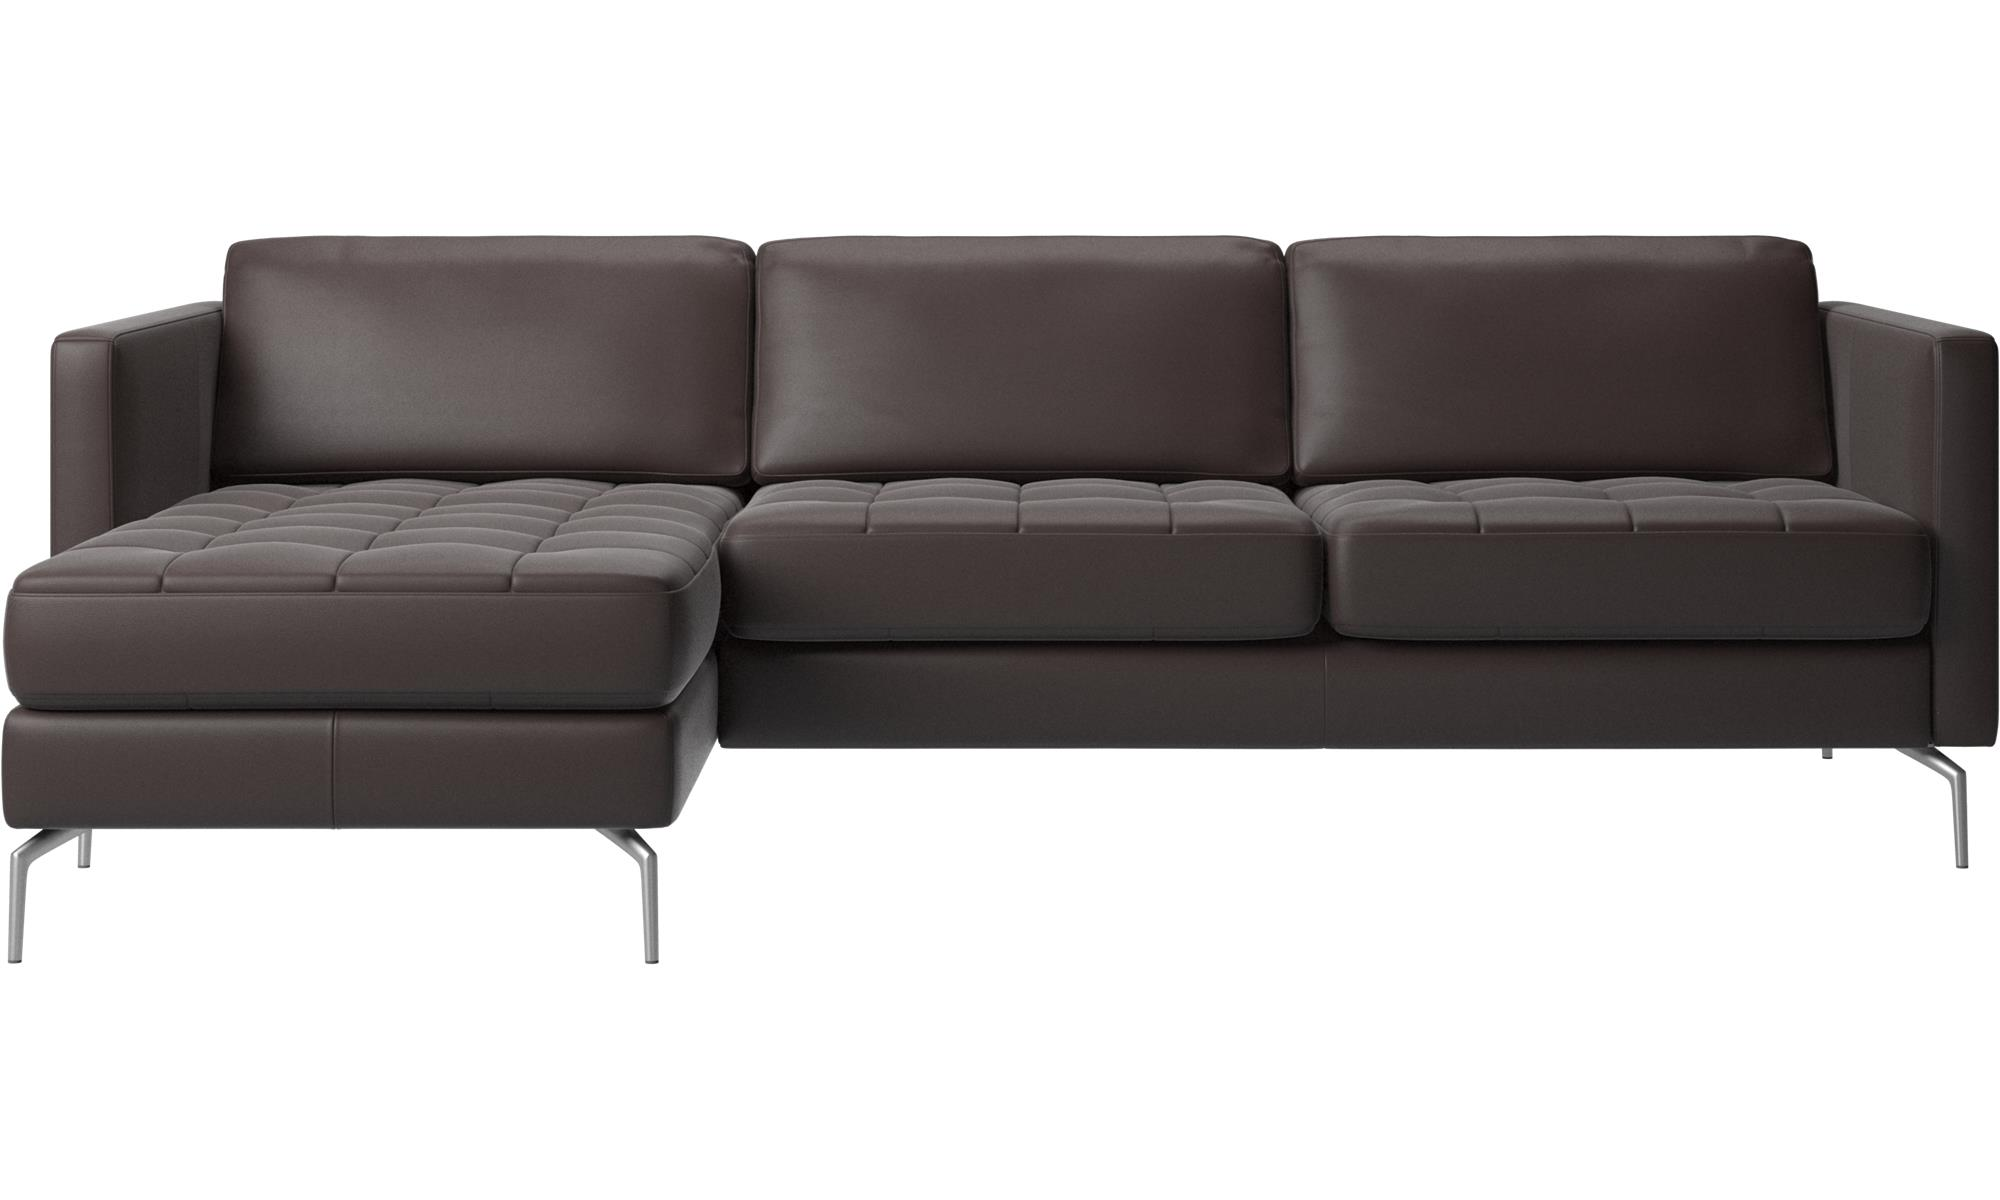 chaise longue sofas osaka sofa with resting unit tufted seat boconcept. Black Bedroom Furniture Sets. Home Design Ideas